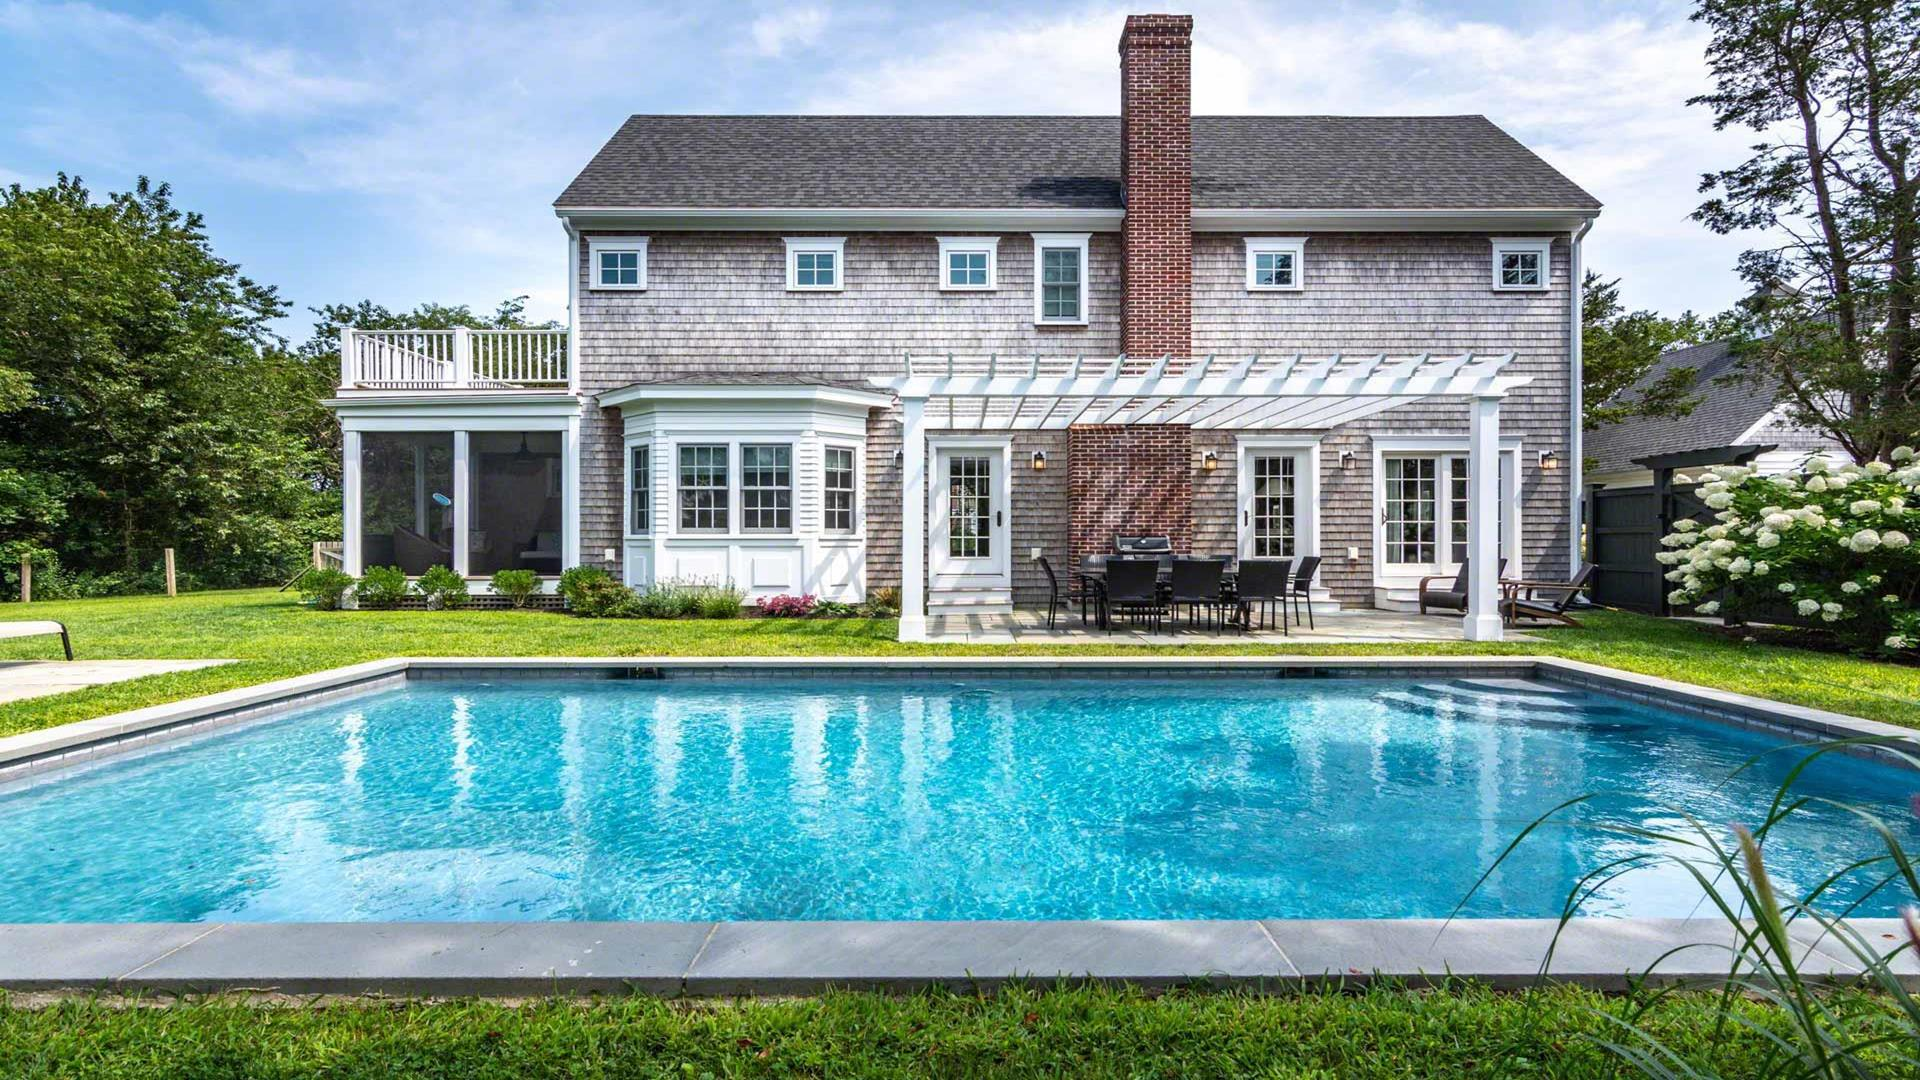 Edgartown Compound With Pool And Carriage House